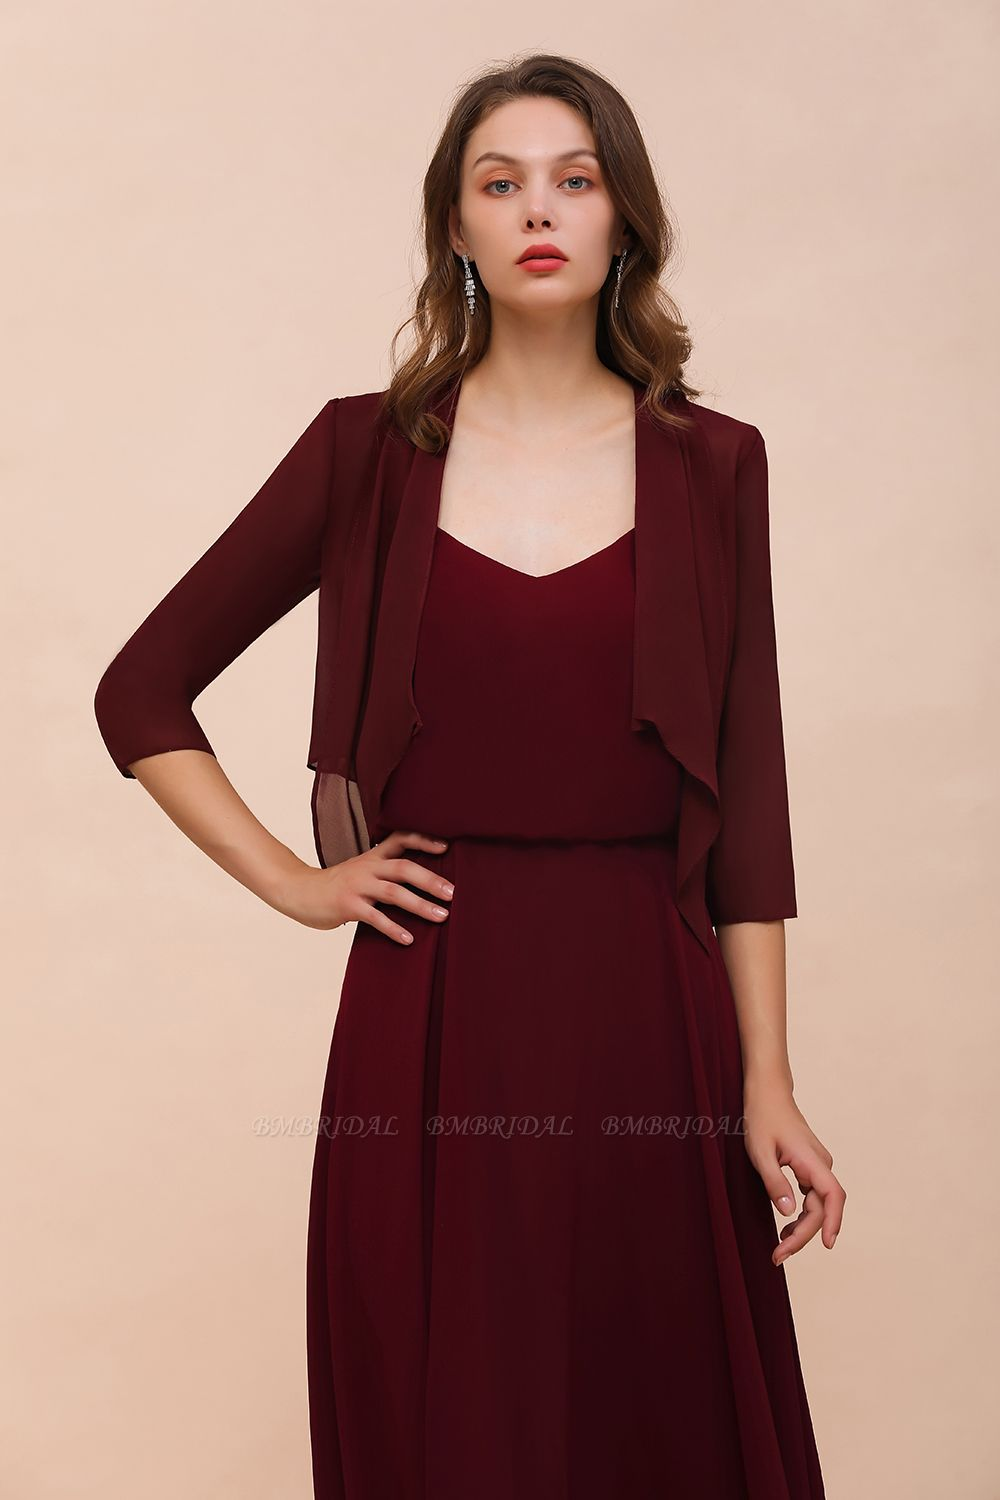 BMbridal Burgundy Chiffon Special Occasion Wraps with Half Sleeves